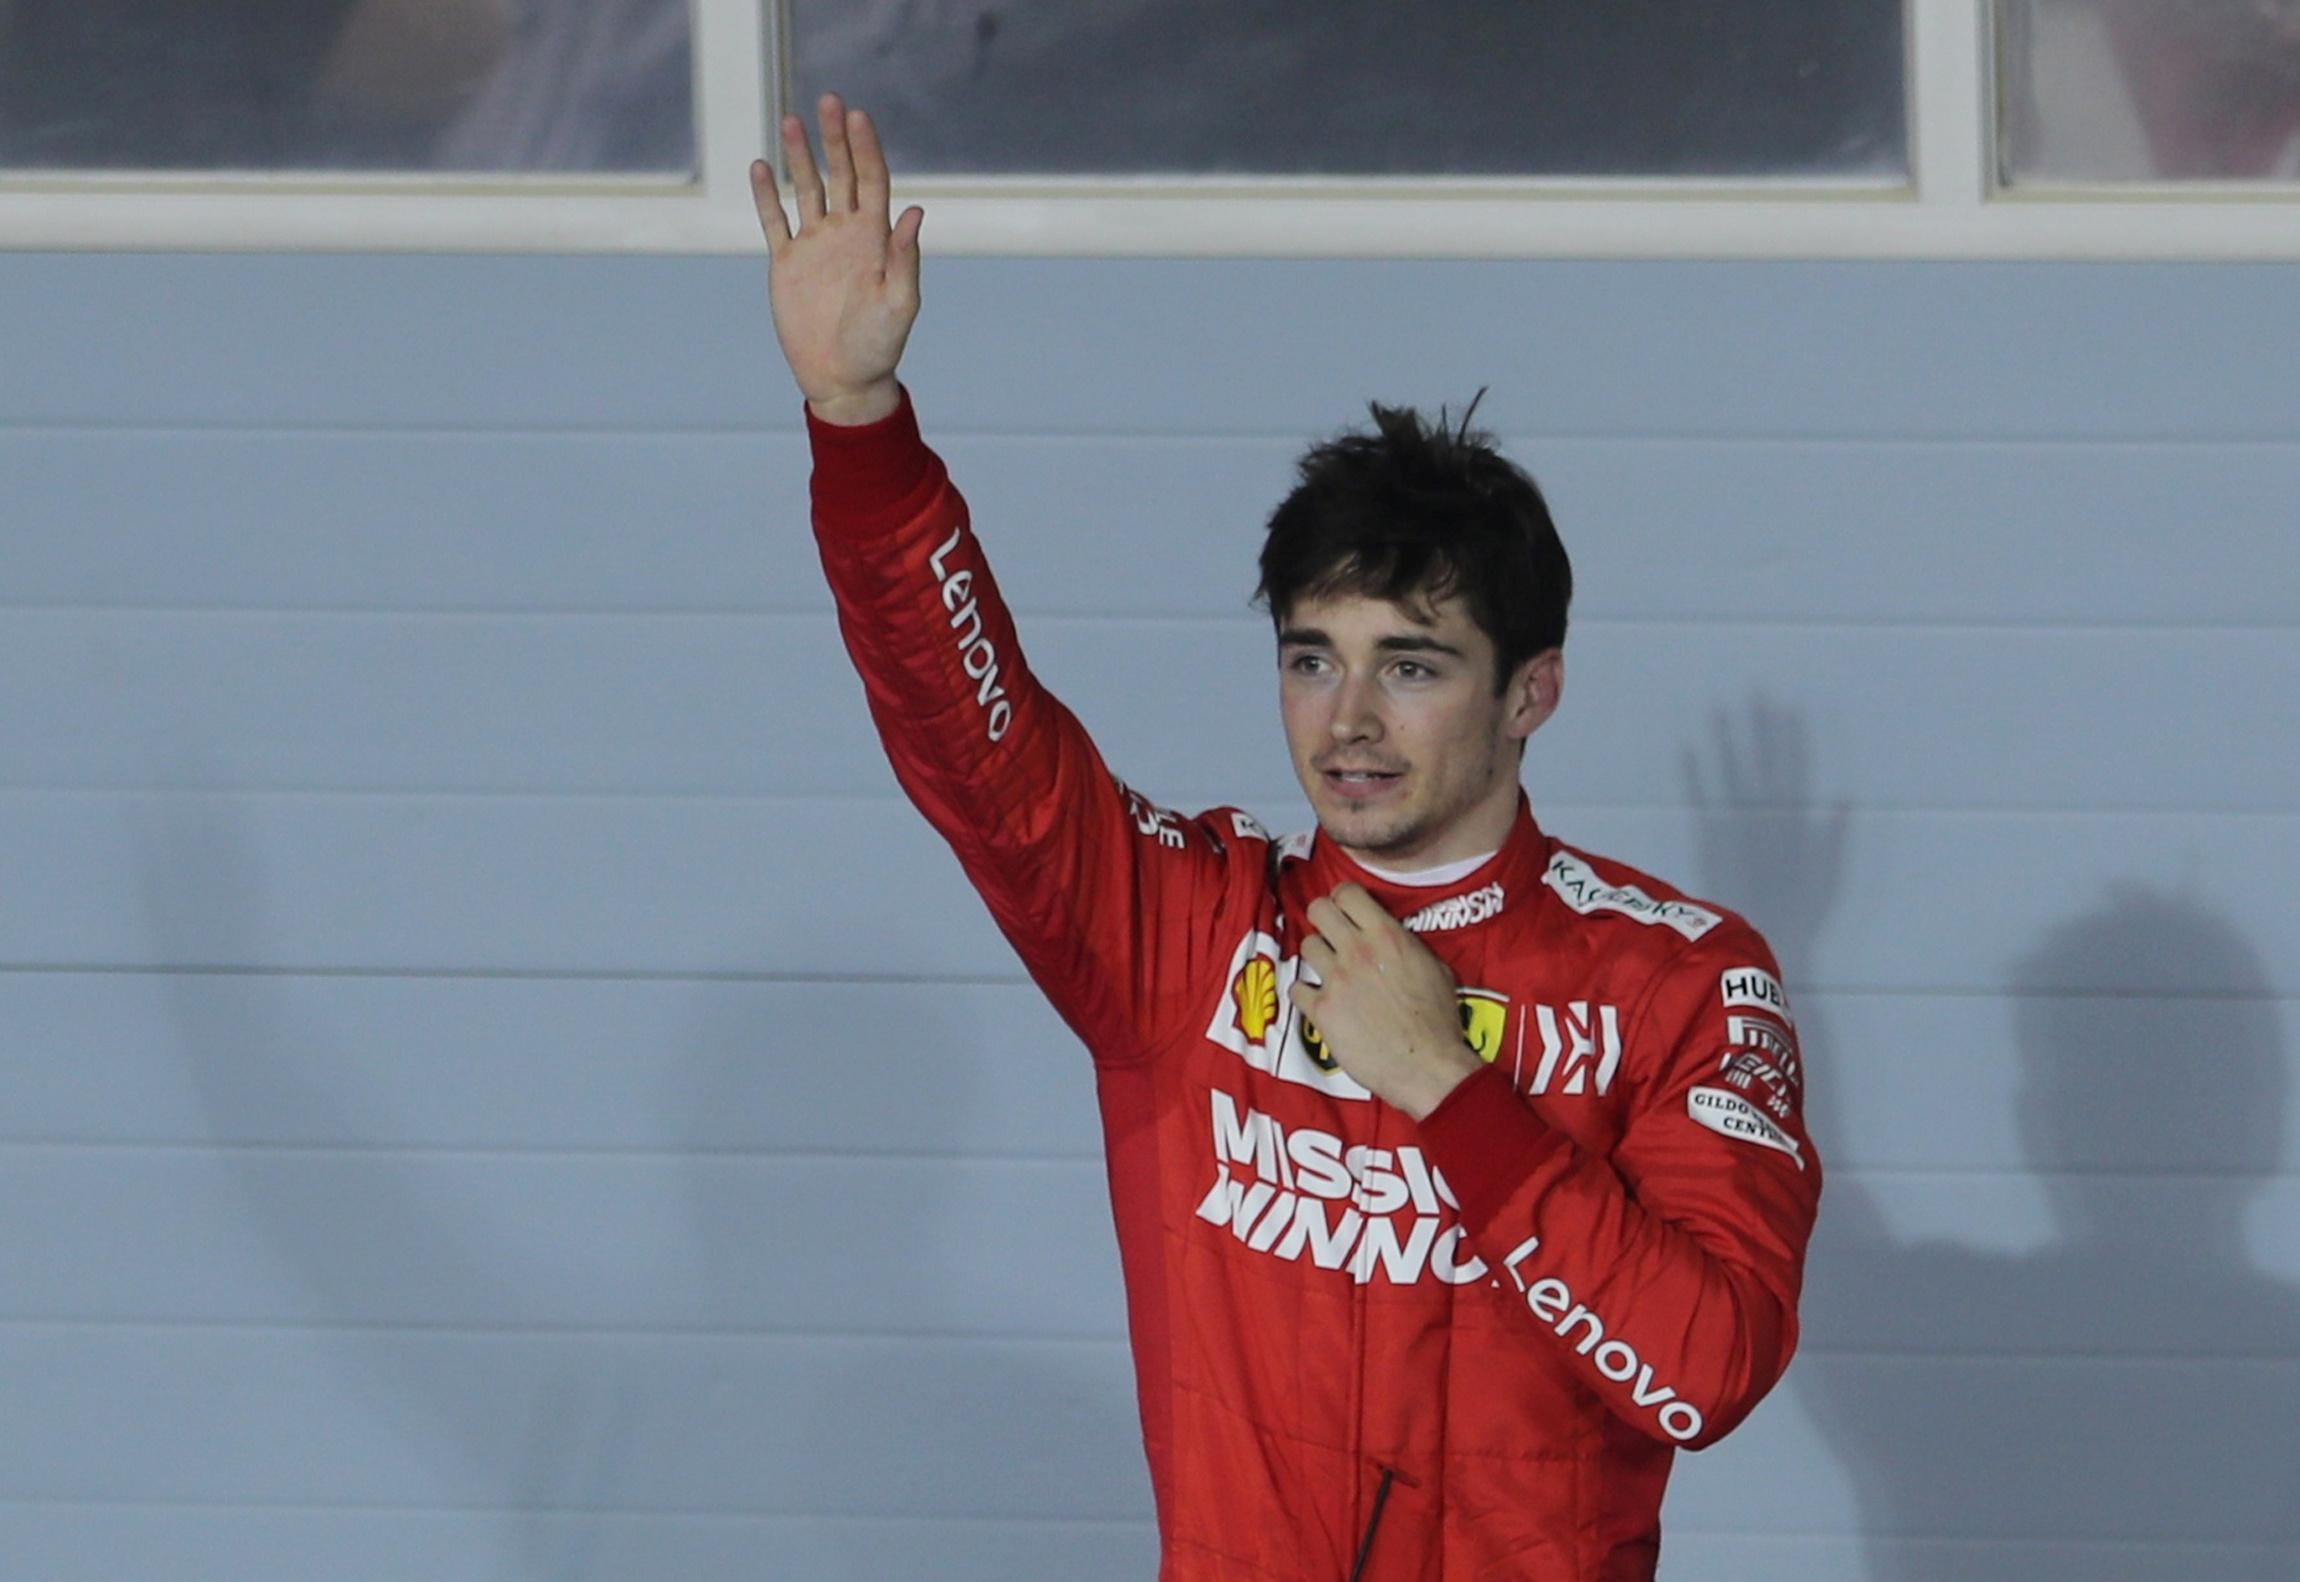 Motor racing - We will come back stronger, says luckless Leclerc